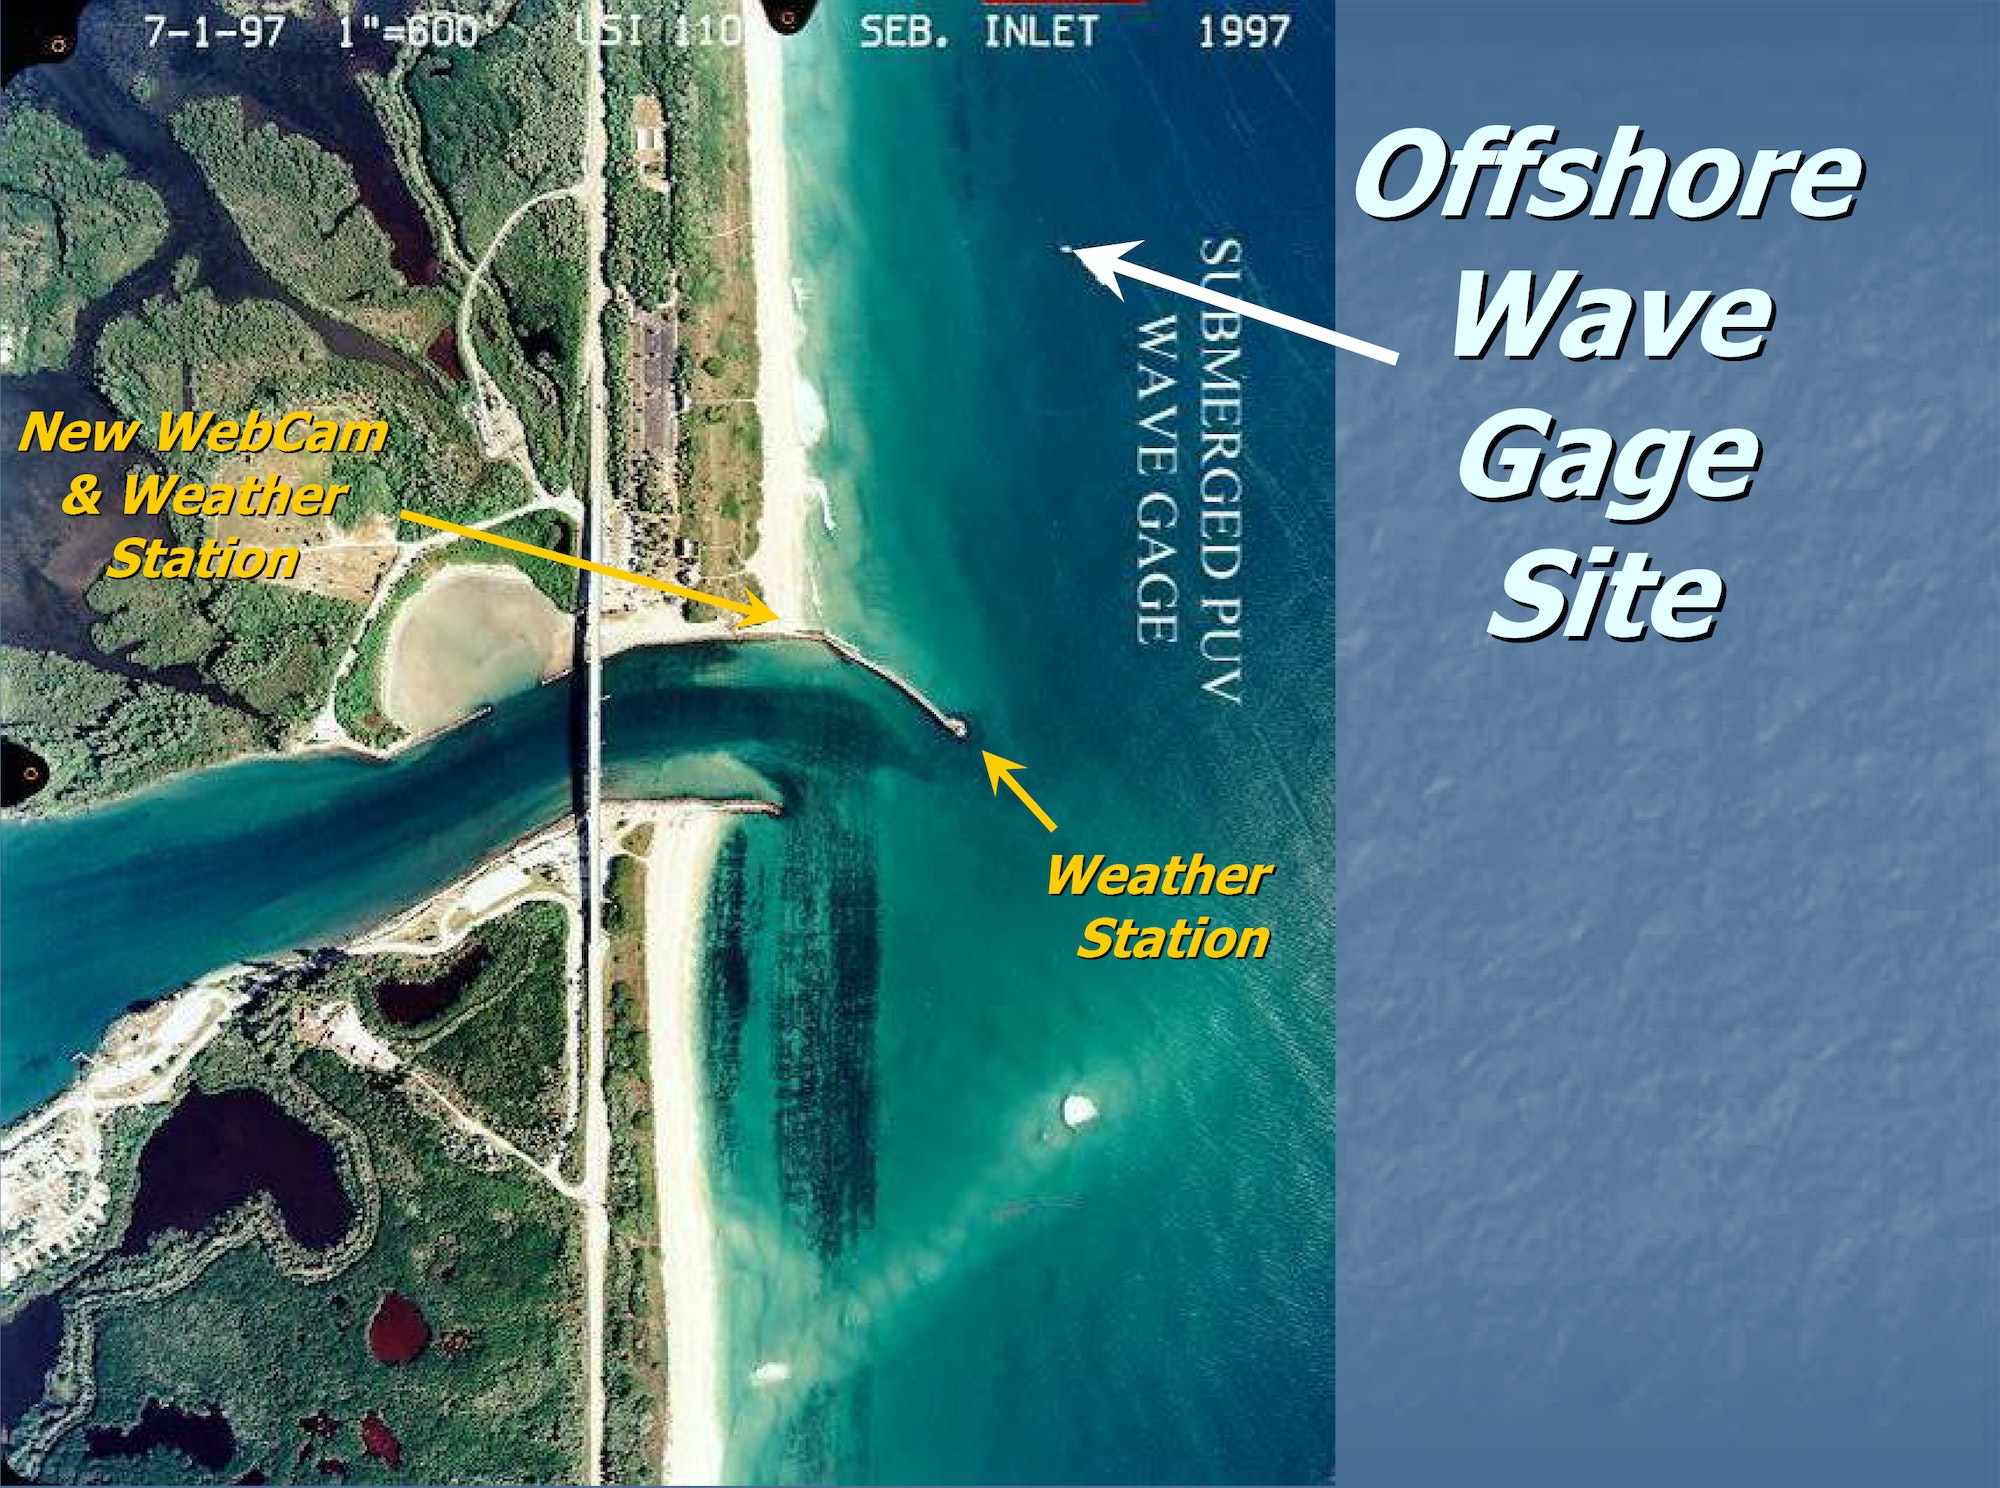 aerial map of inlet looking straight down depicting wave gauge and weather station sites